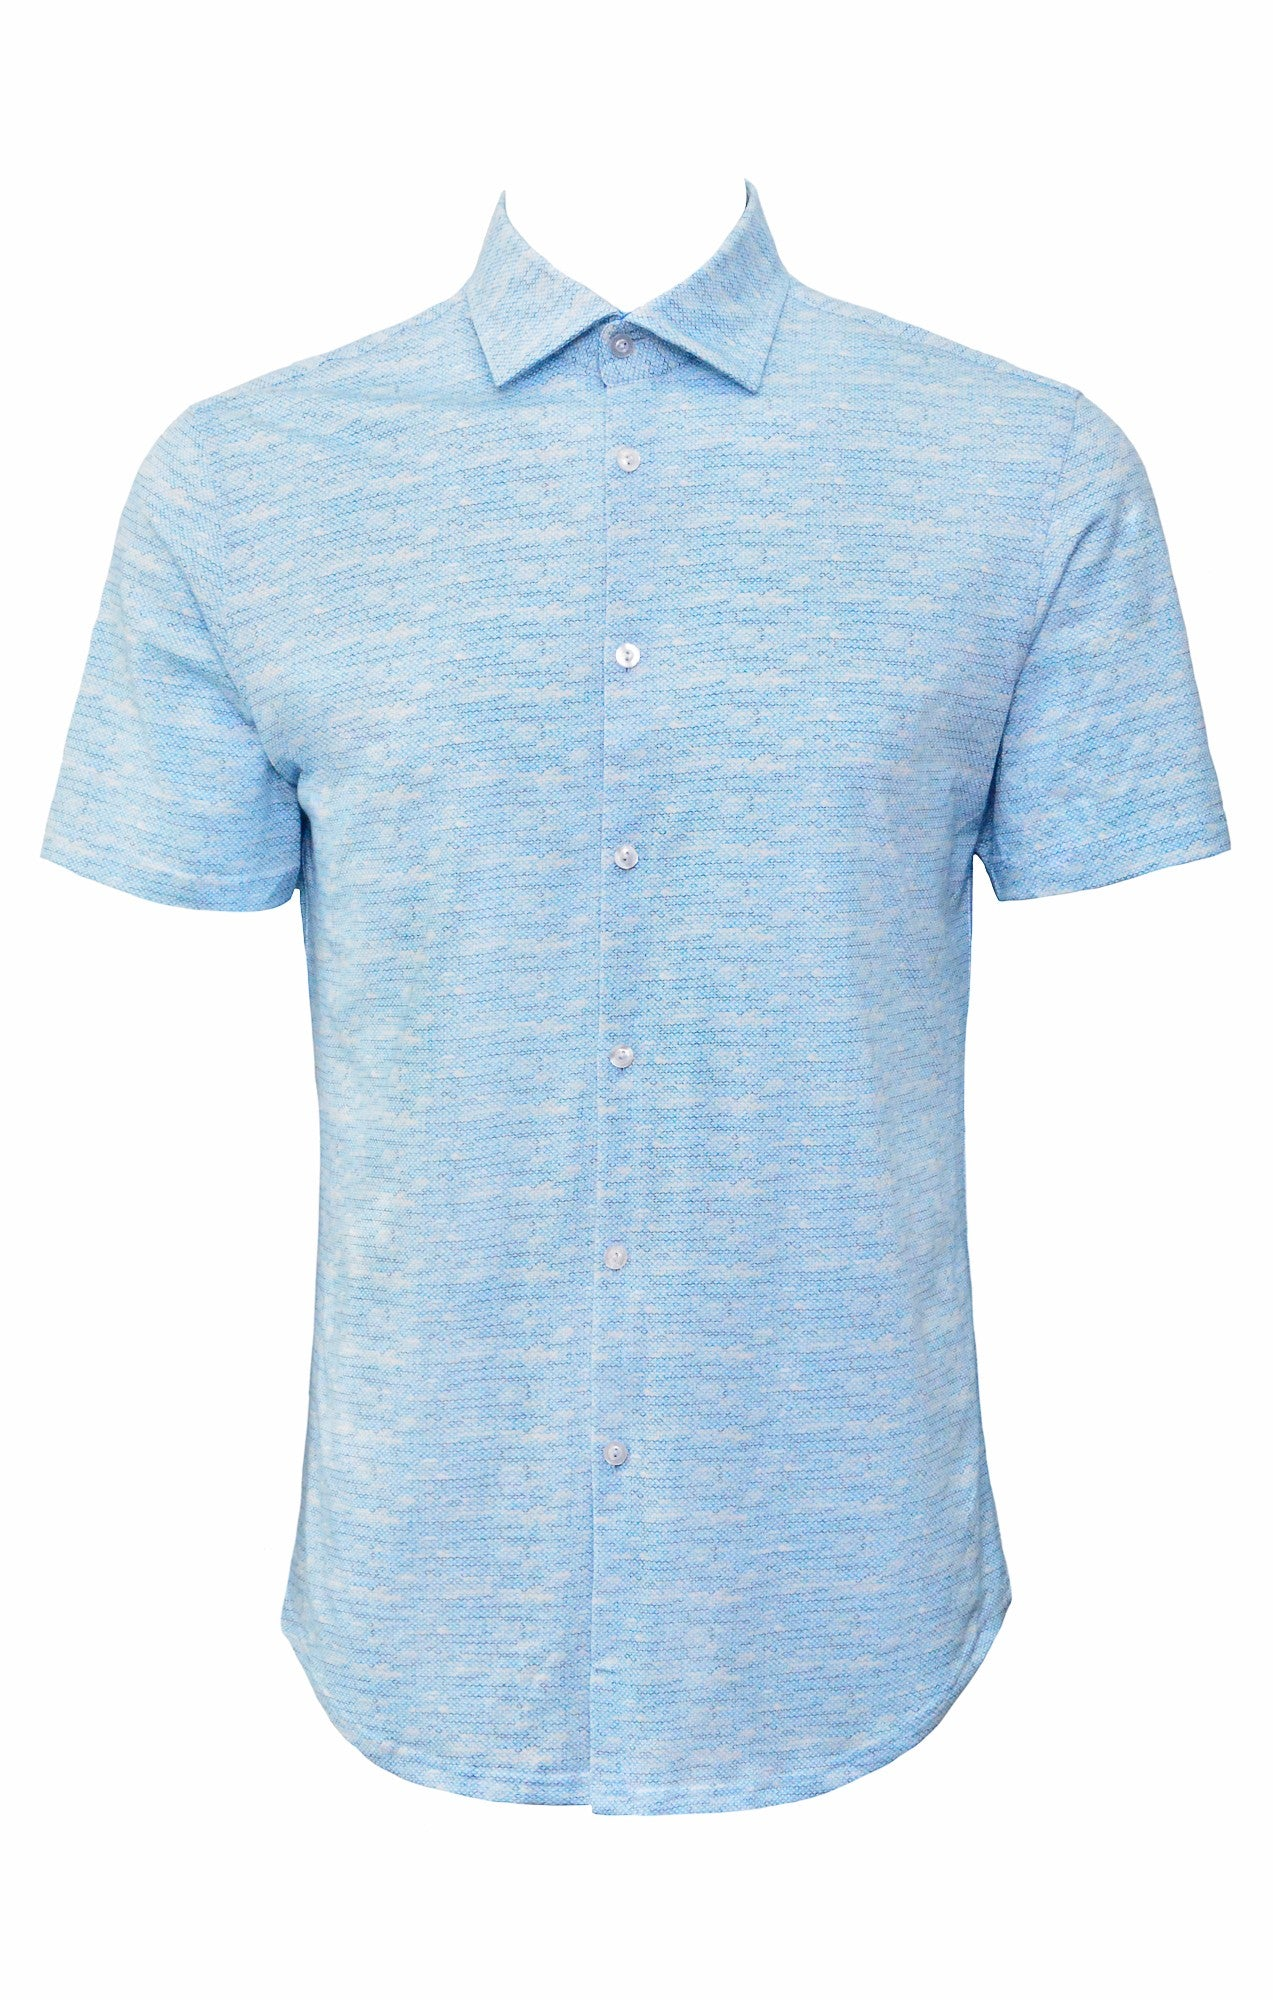 Stone Rose Men's Blue Melange Knit Short Sleeve Shirt-Stone Rose